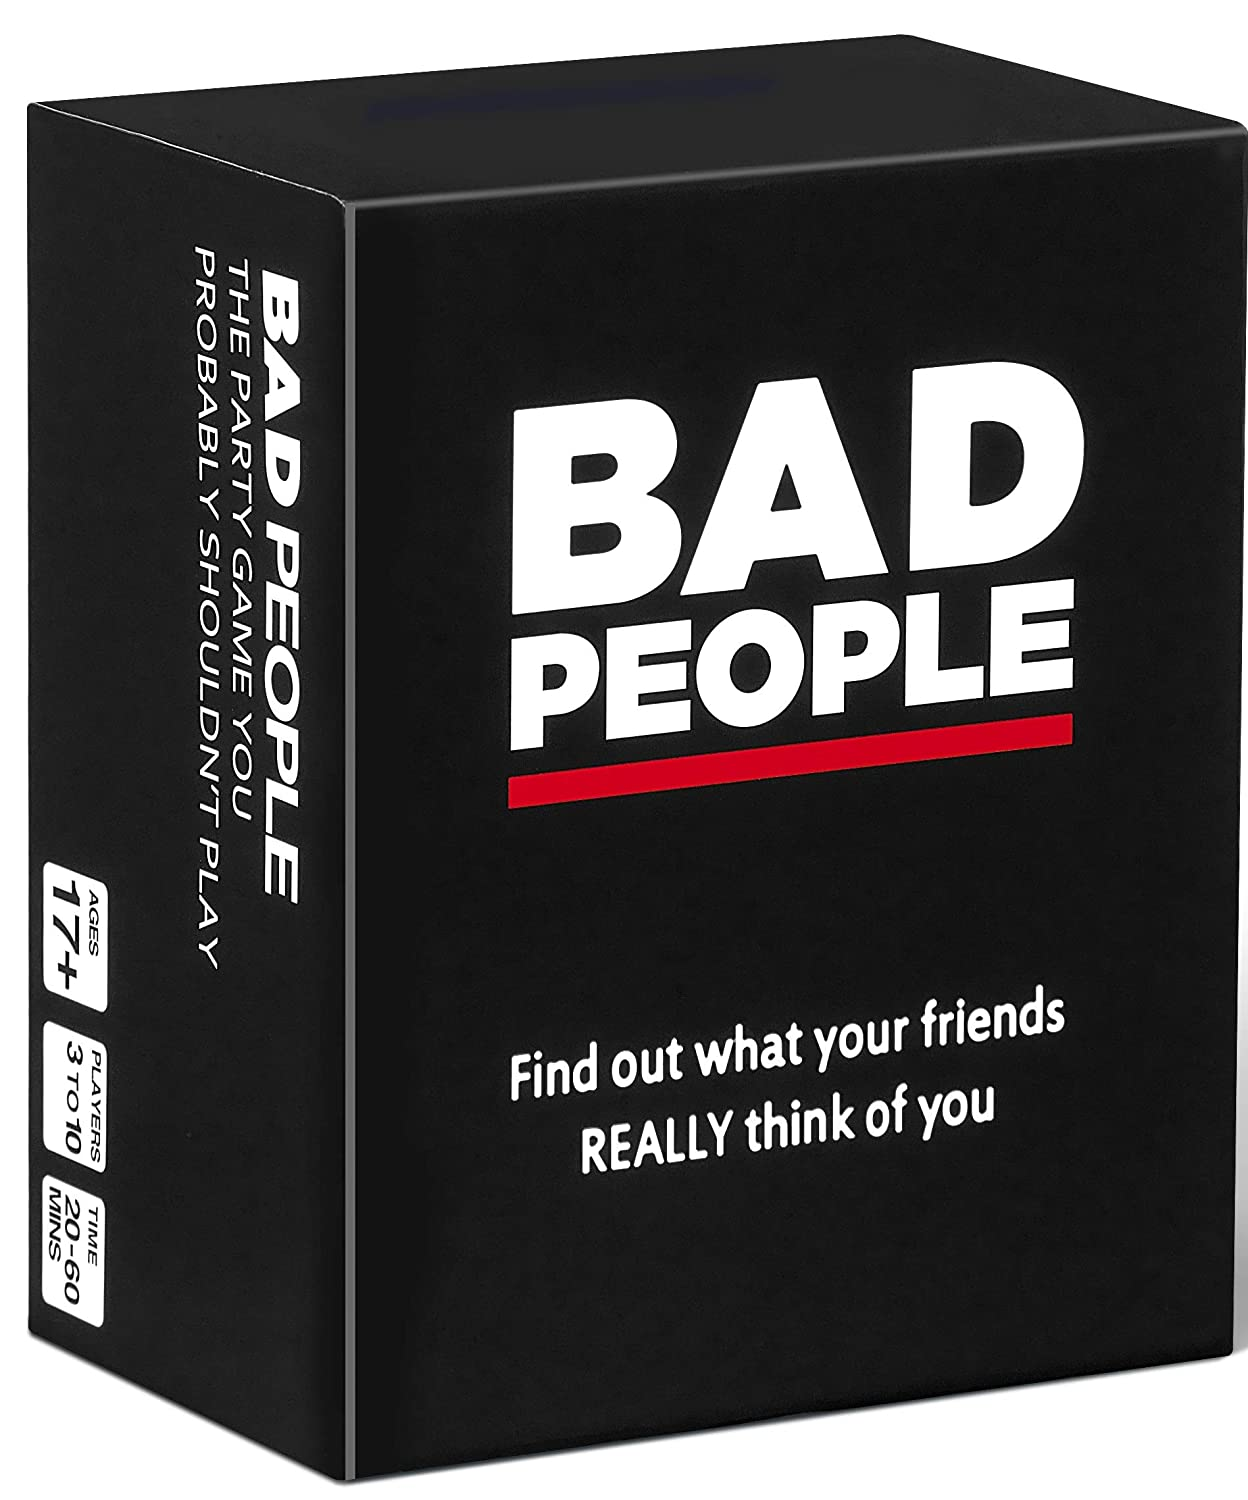 Bad People https://amzn.to/2UocGSI